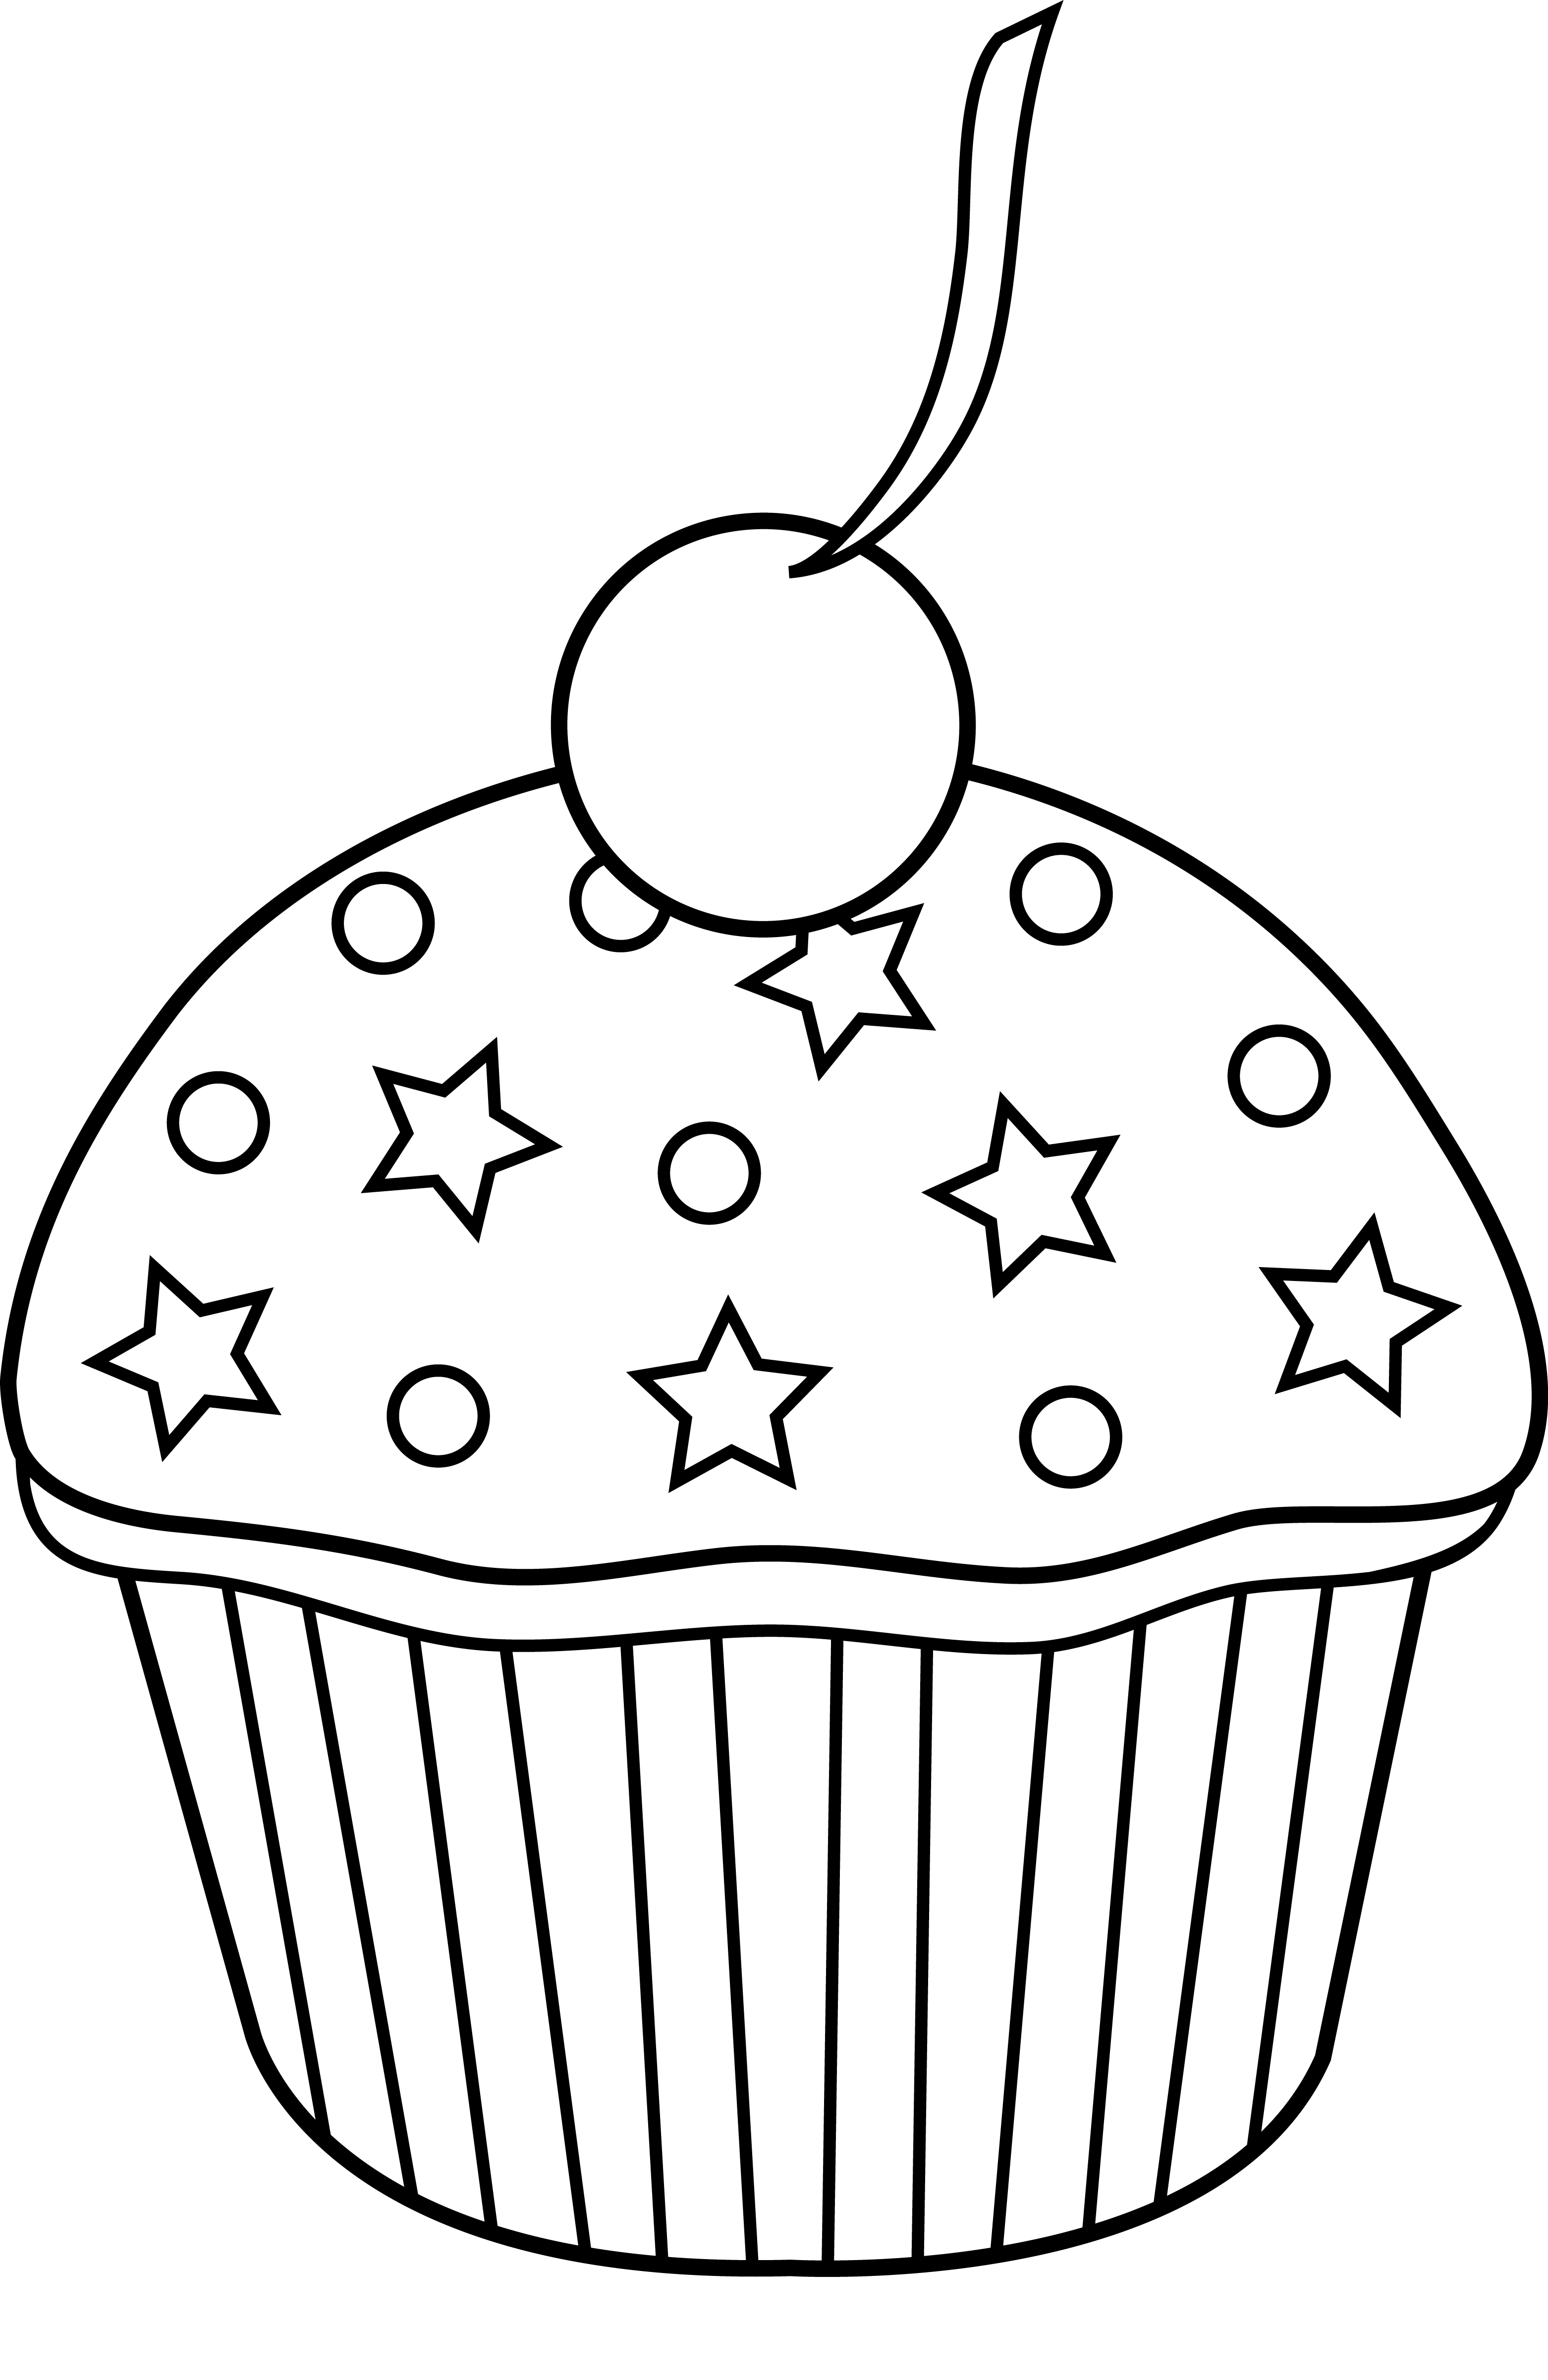 Muffin clipart colored cupcake. Cute outline to color